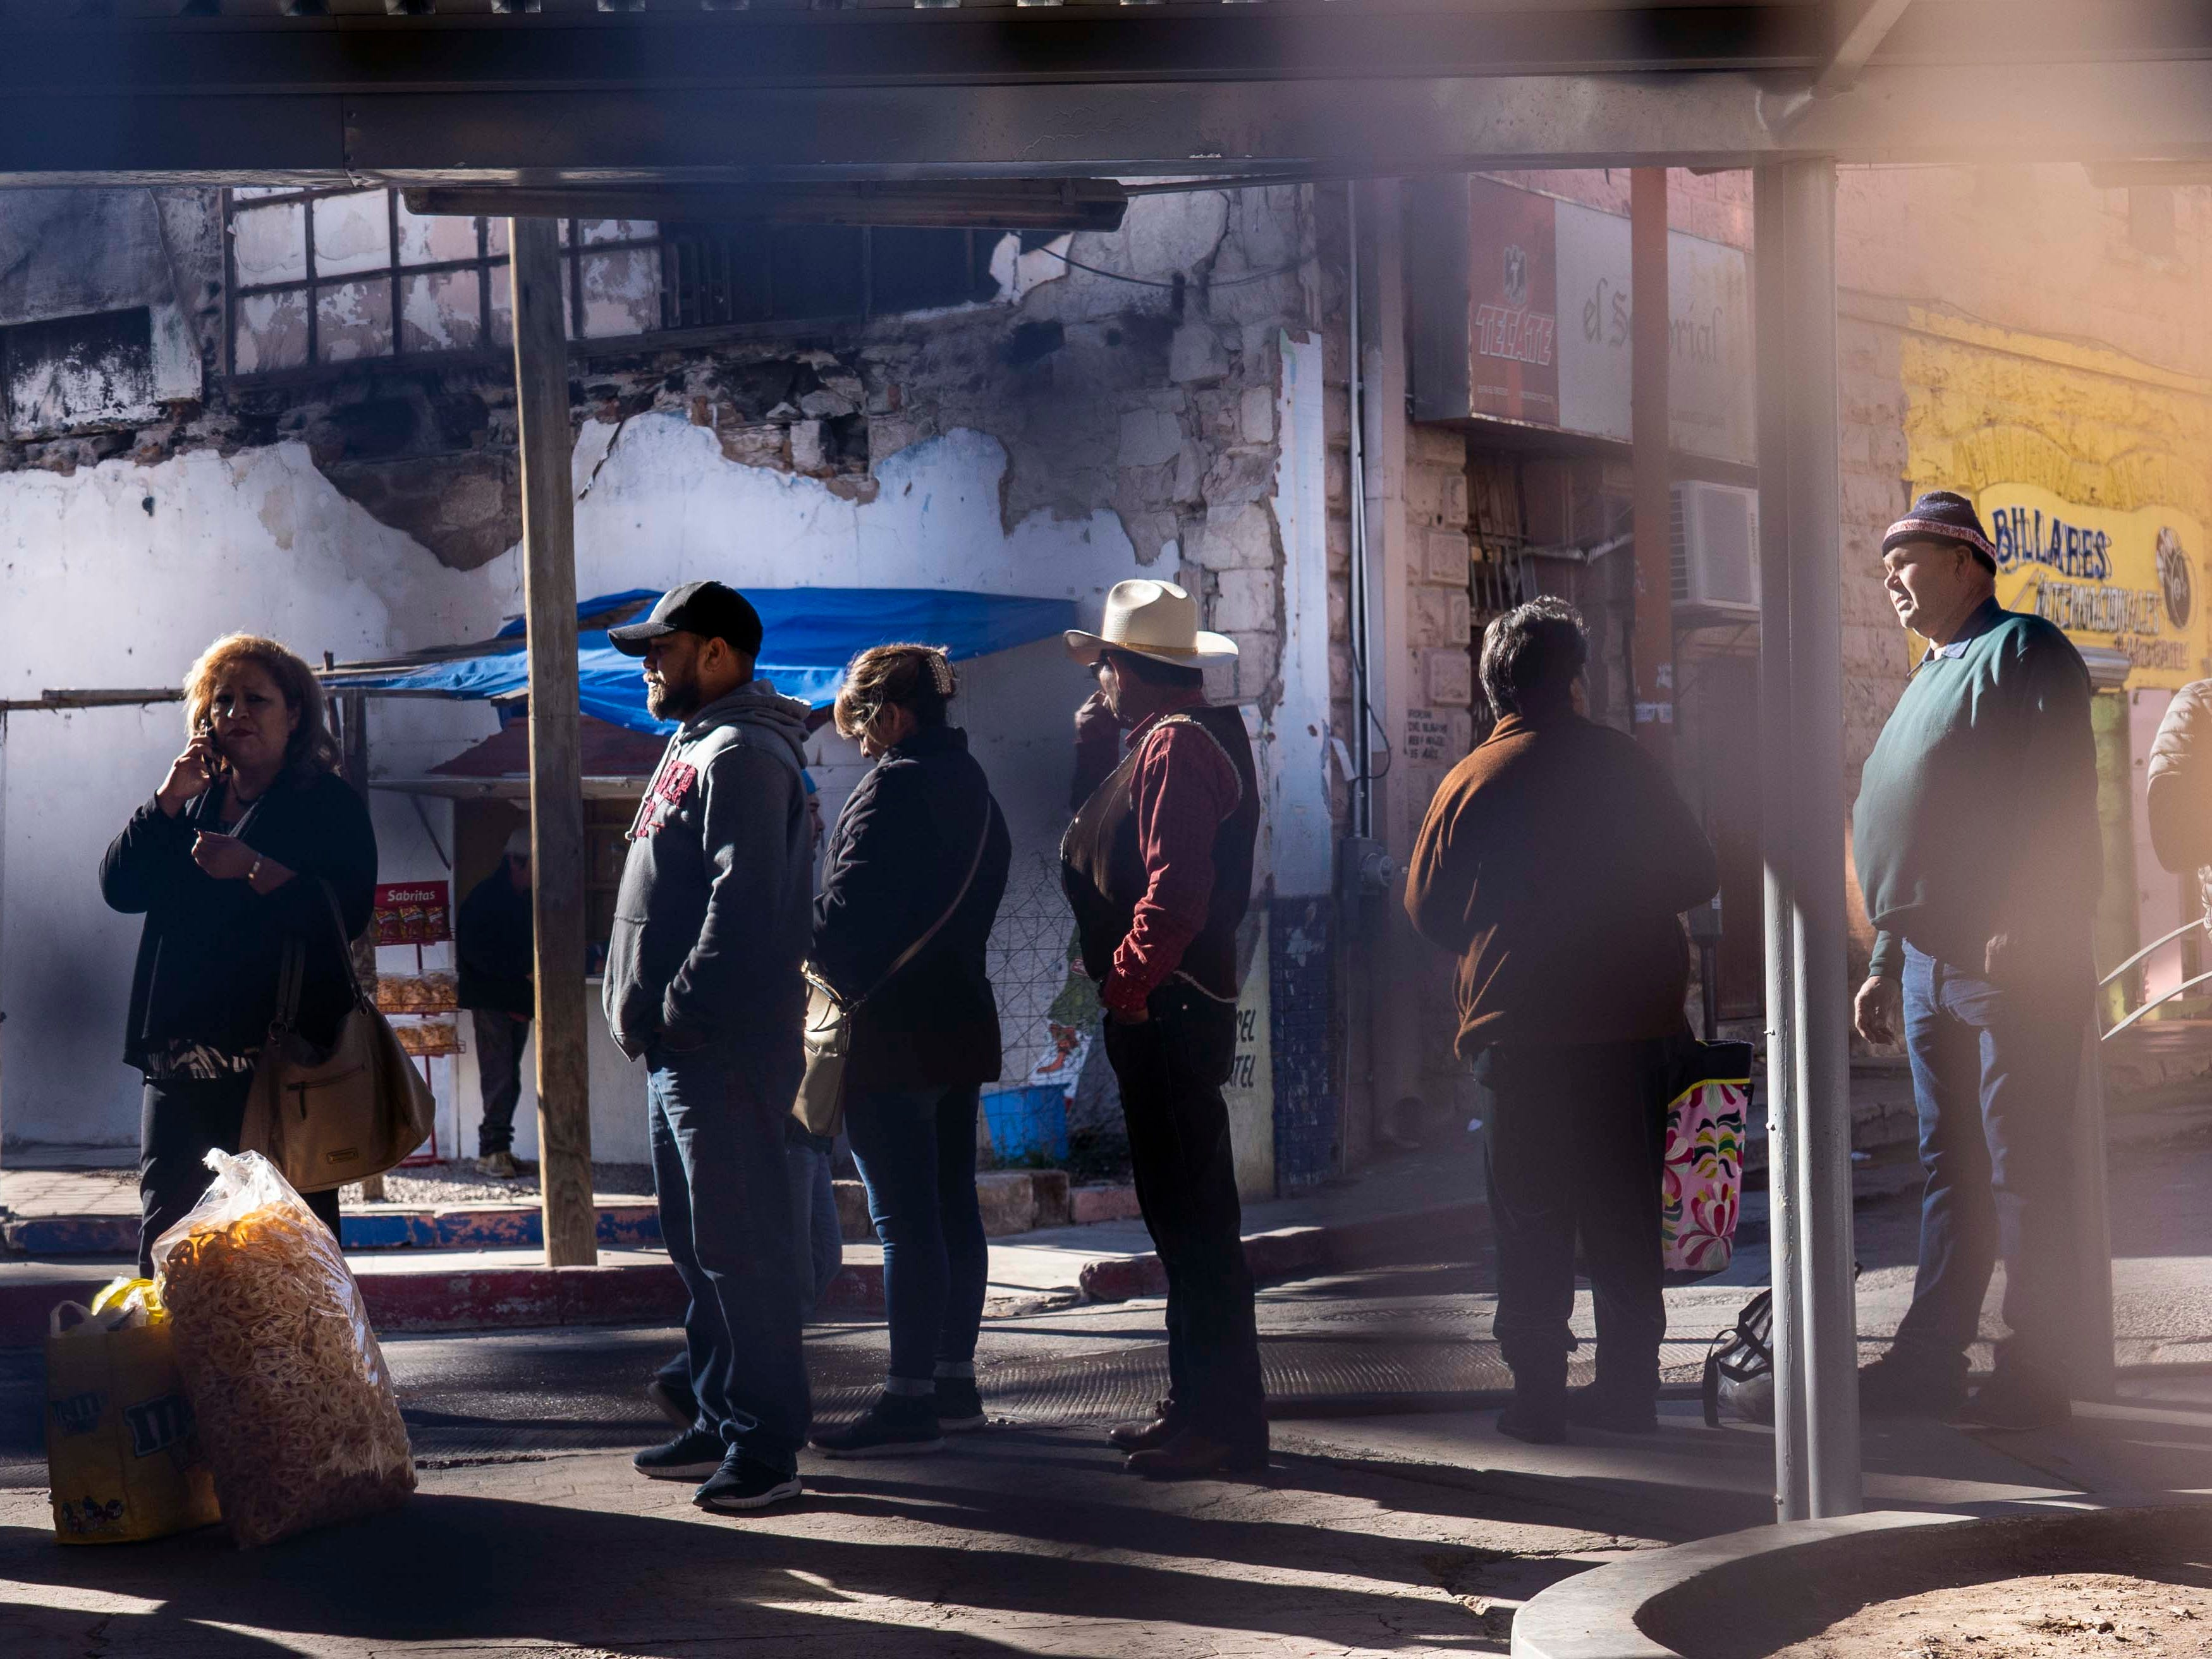 People wait in long lines to cross the border in Nogales, Arizona.